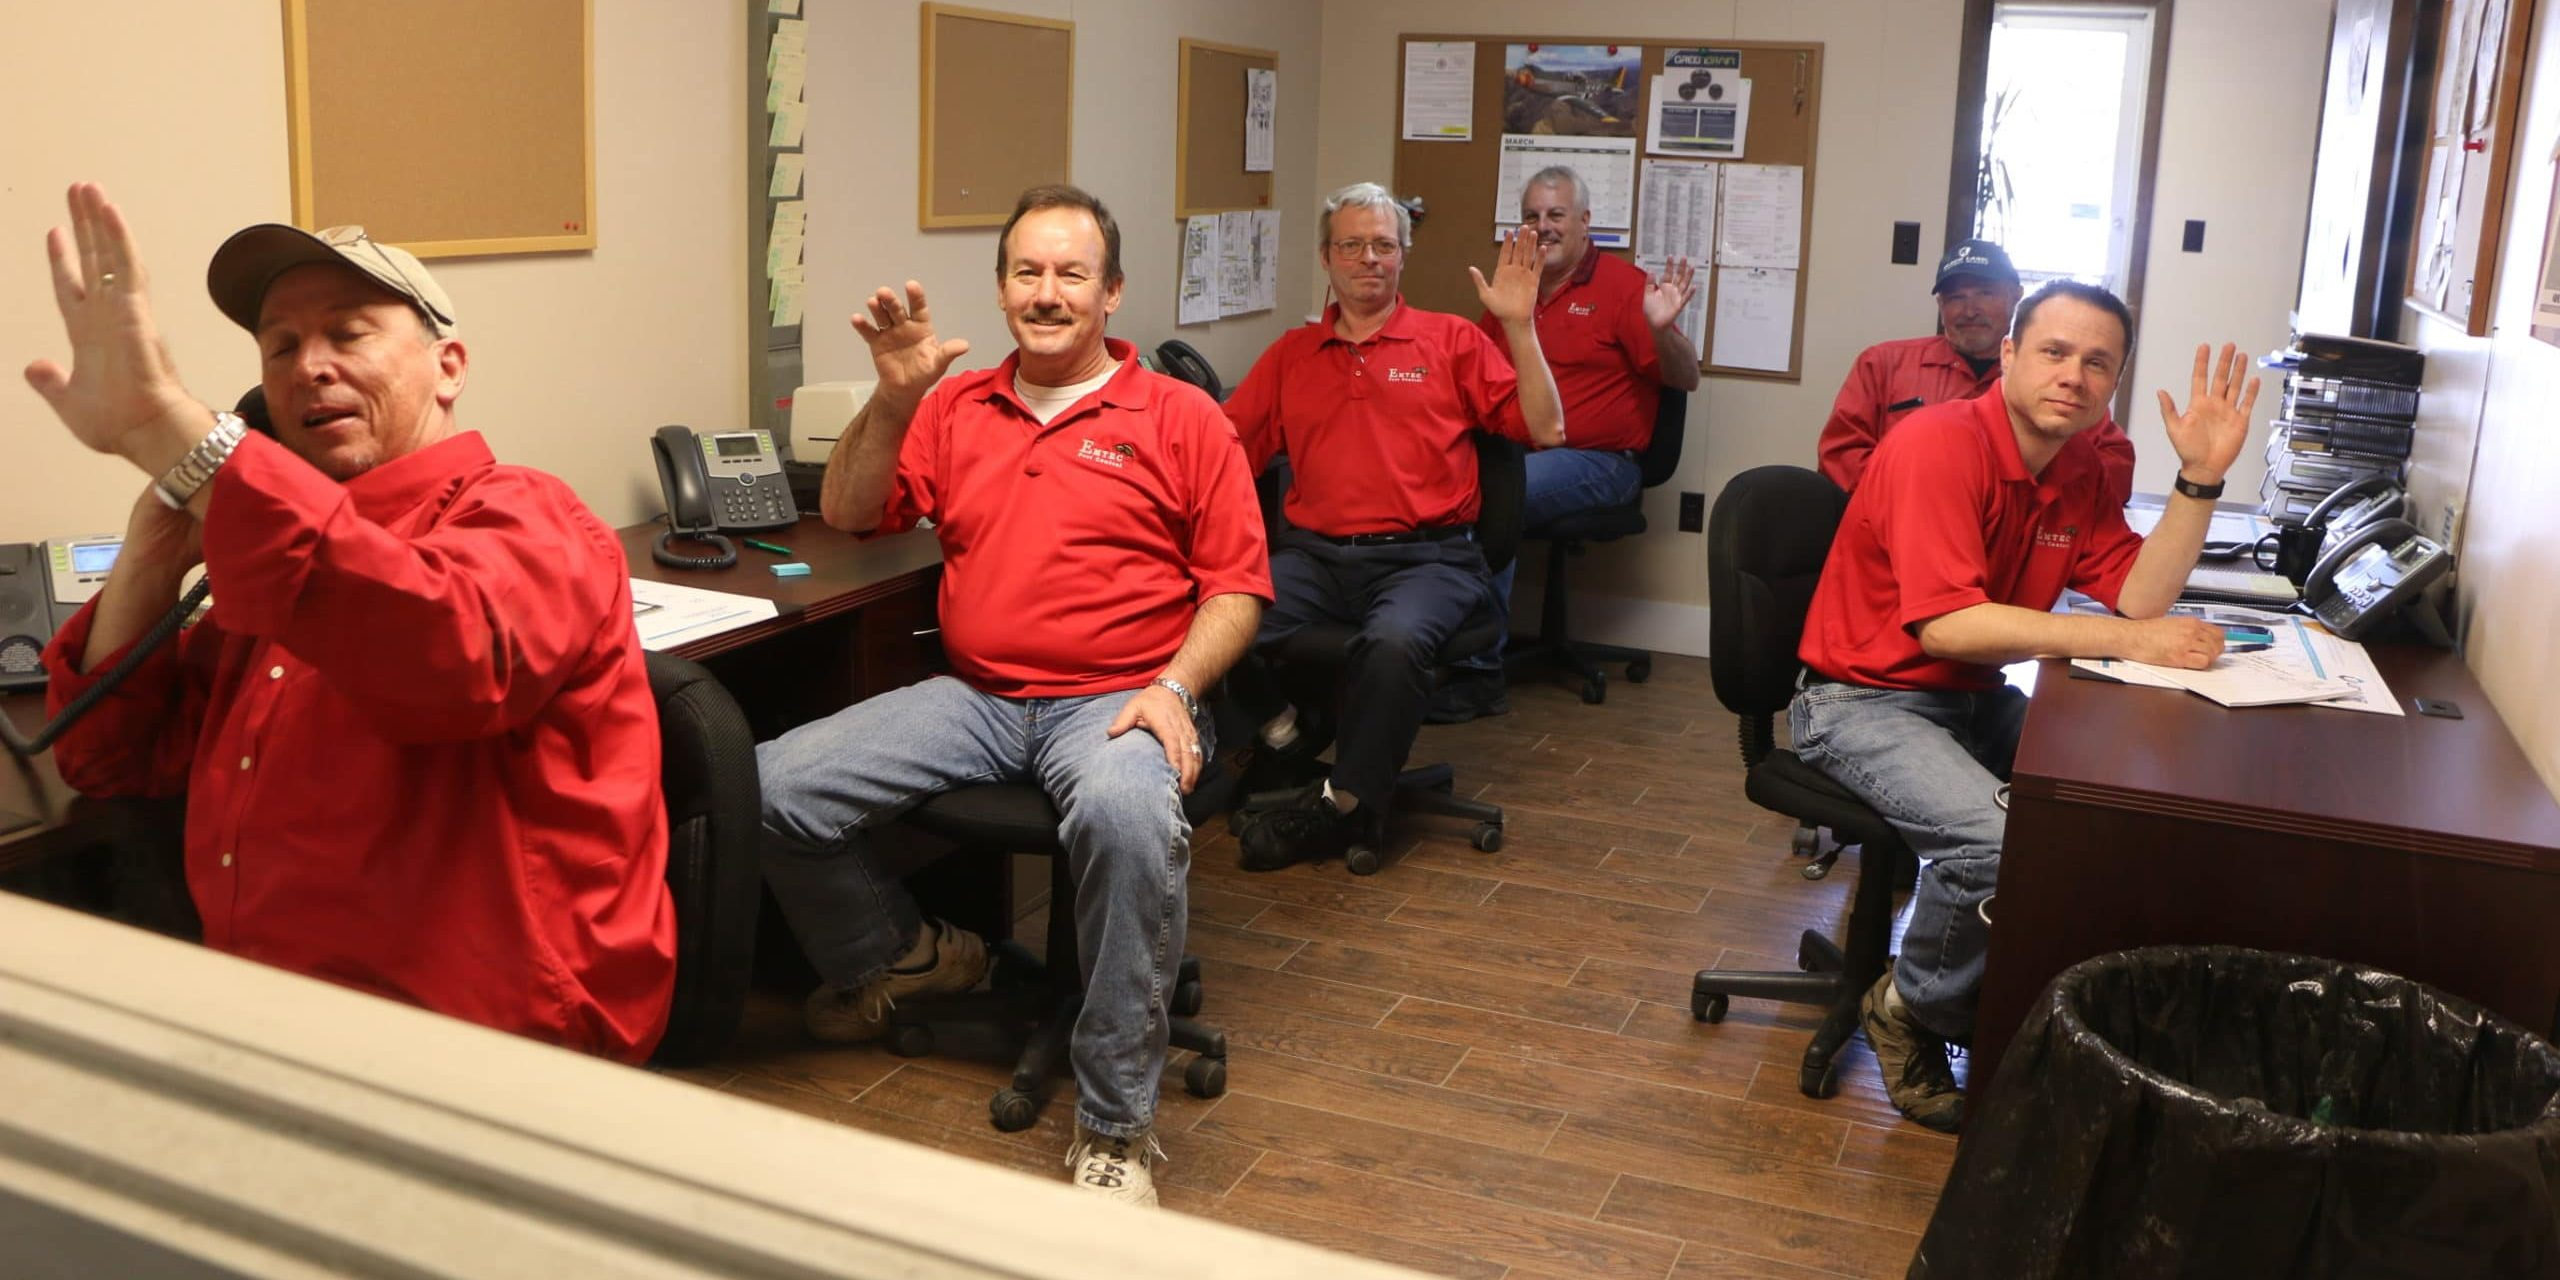 Emtec staff taking calls in the office